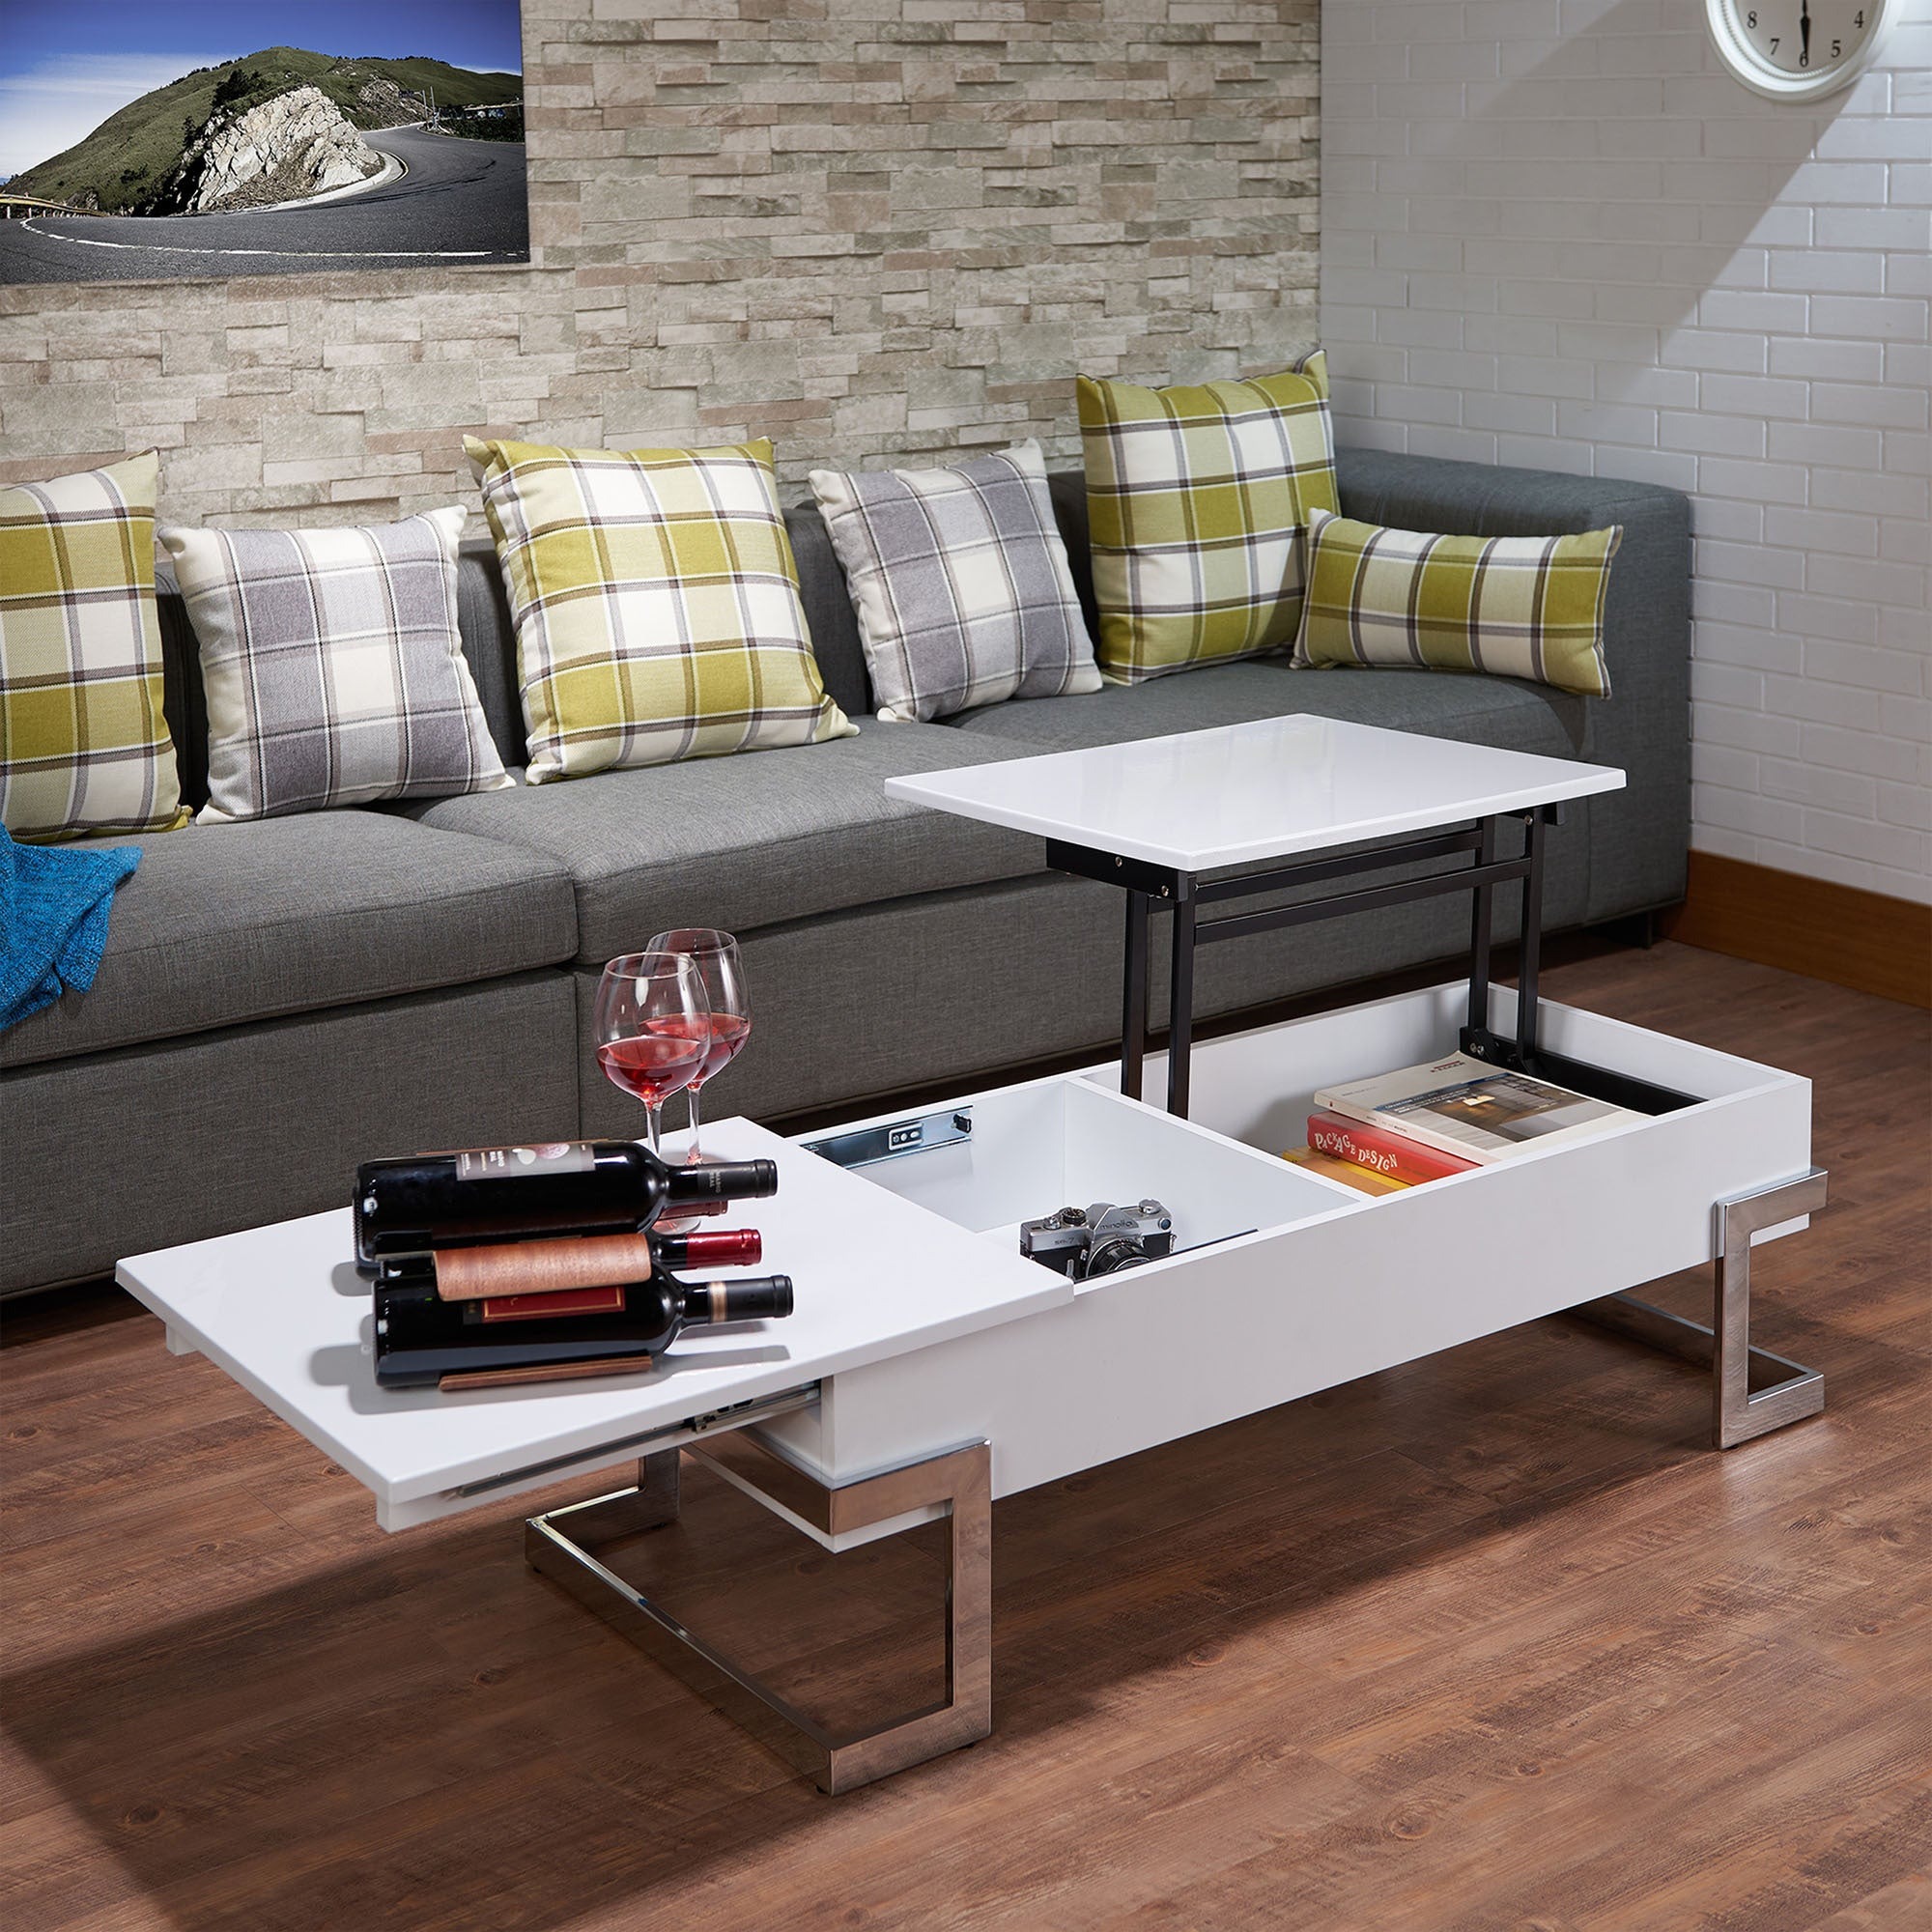 Acme furniture 81855 calnan lift top coffee table one size black picture 6 of 10 geotapseo Image collections